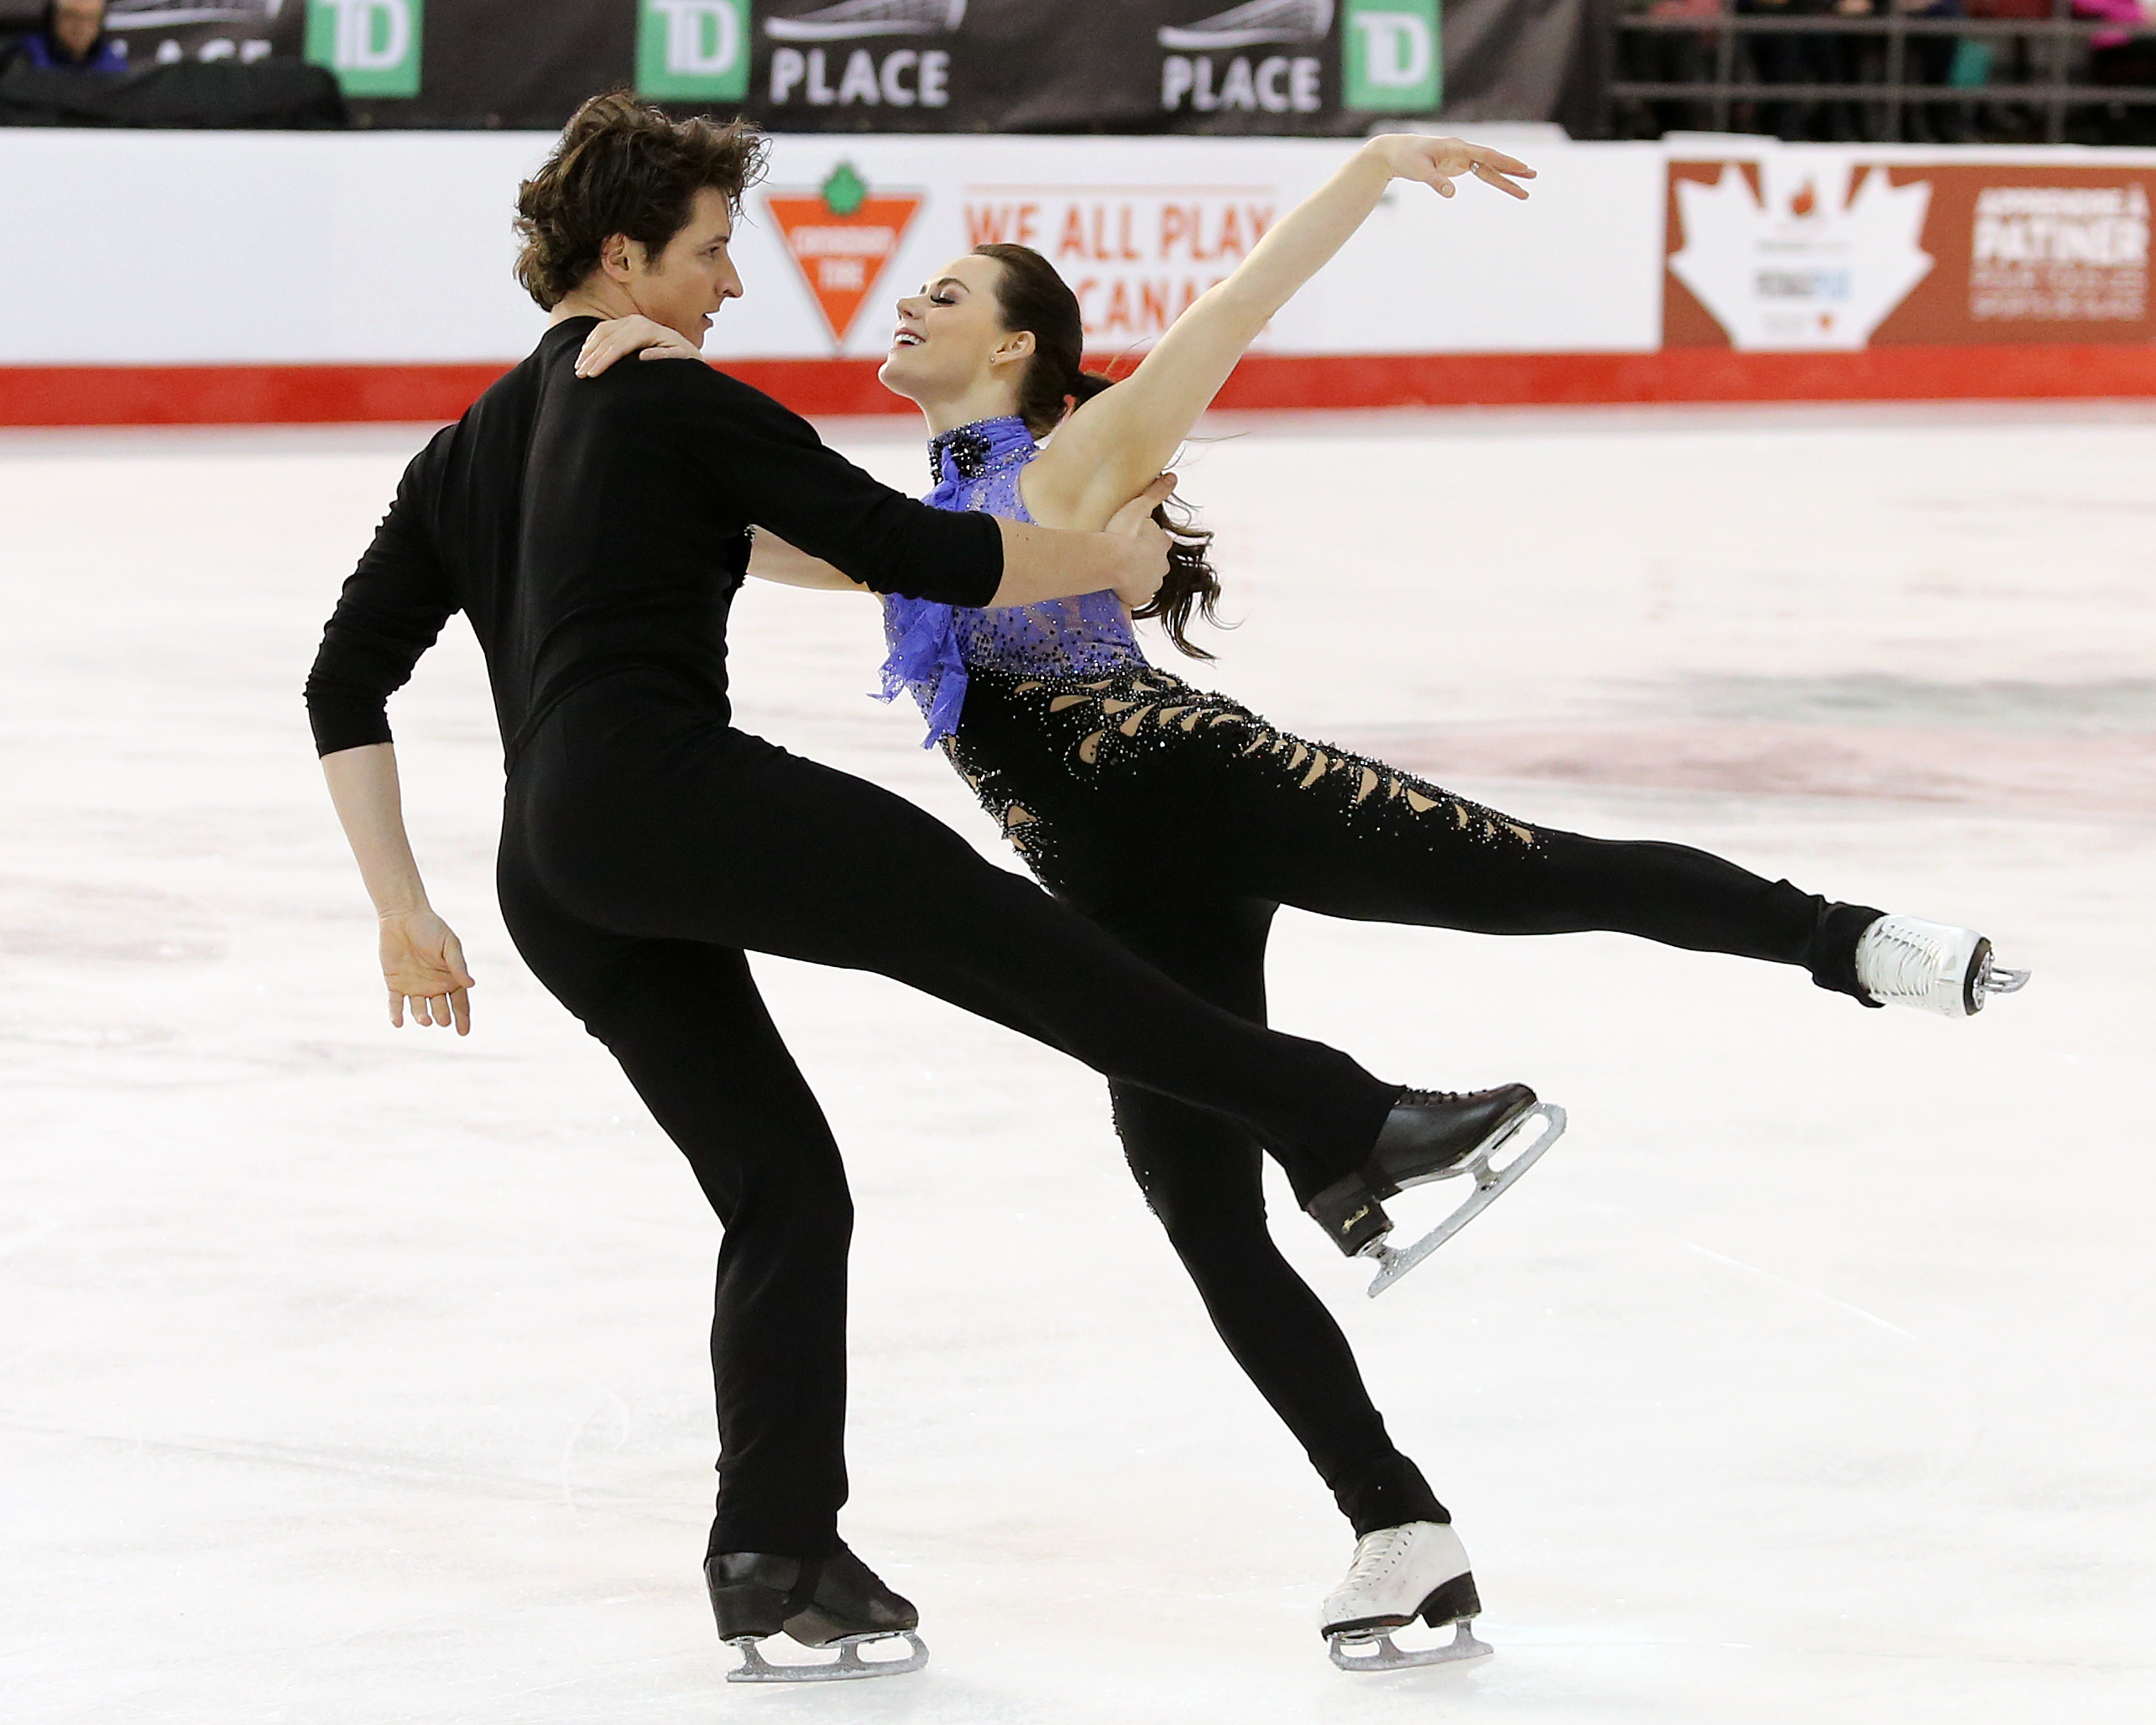 Tessa Virtue and Scott Moir compete in the short dance at the Canadian Tire National Skating Championships, January, 20, 2017 PHOTO: Greg Kolz